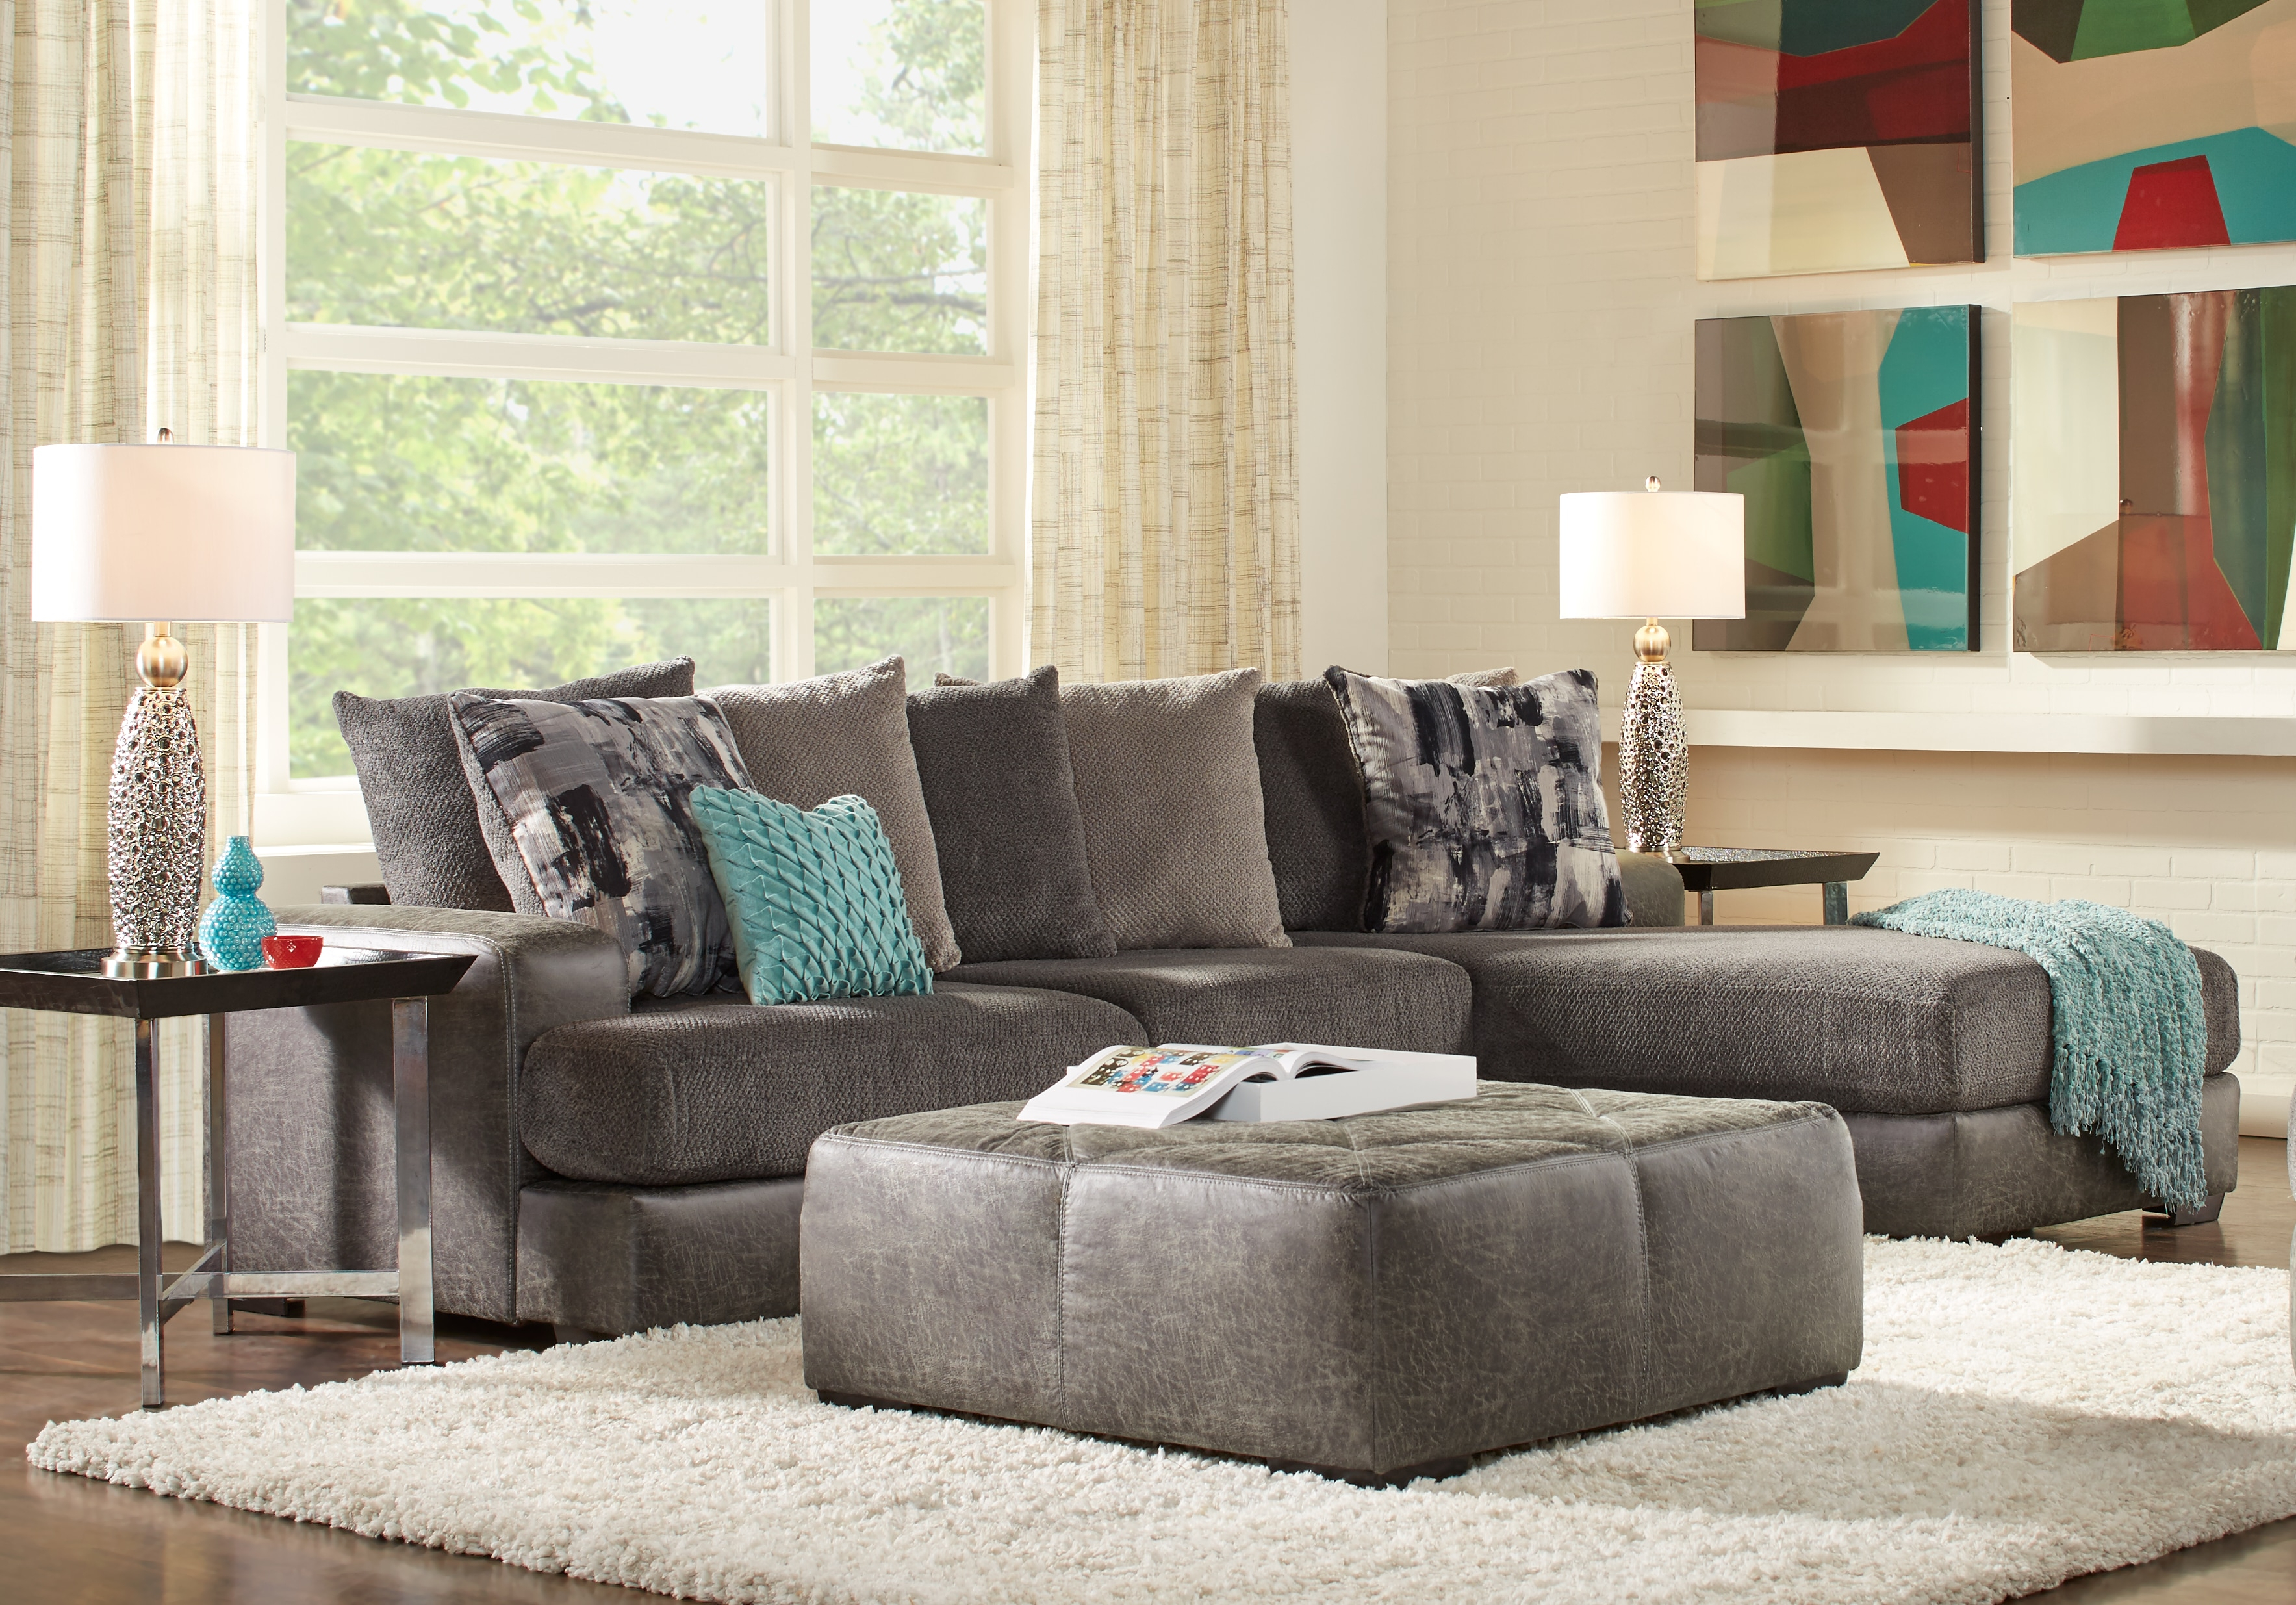 Foster Square Graphite 2 Pc Sectional – Living Room Sets (Gray) With Regard To Mcdade Graphite Sofa Chairs (Image 5 of 25)